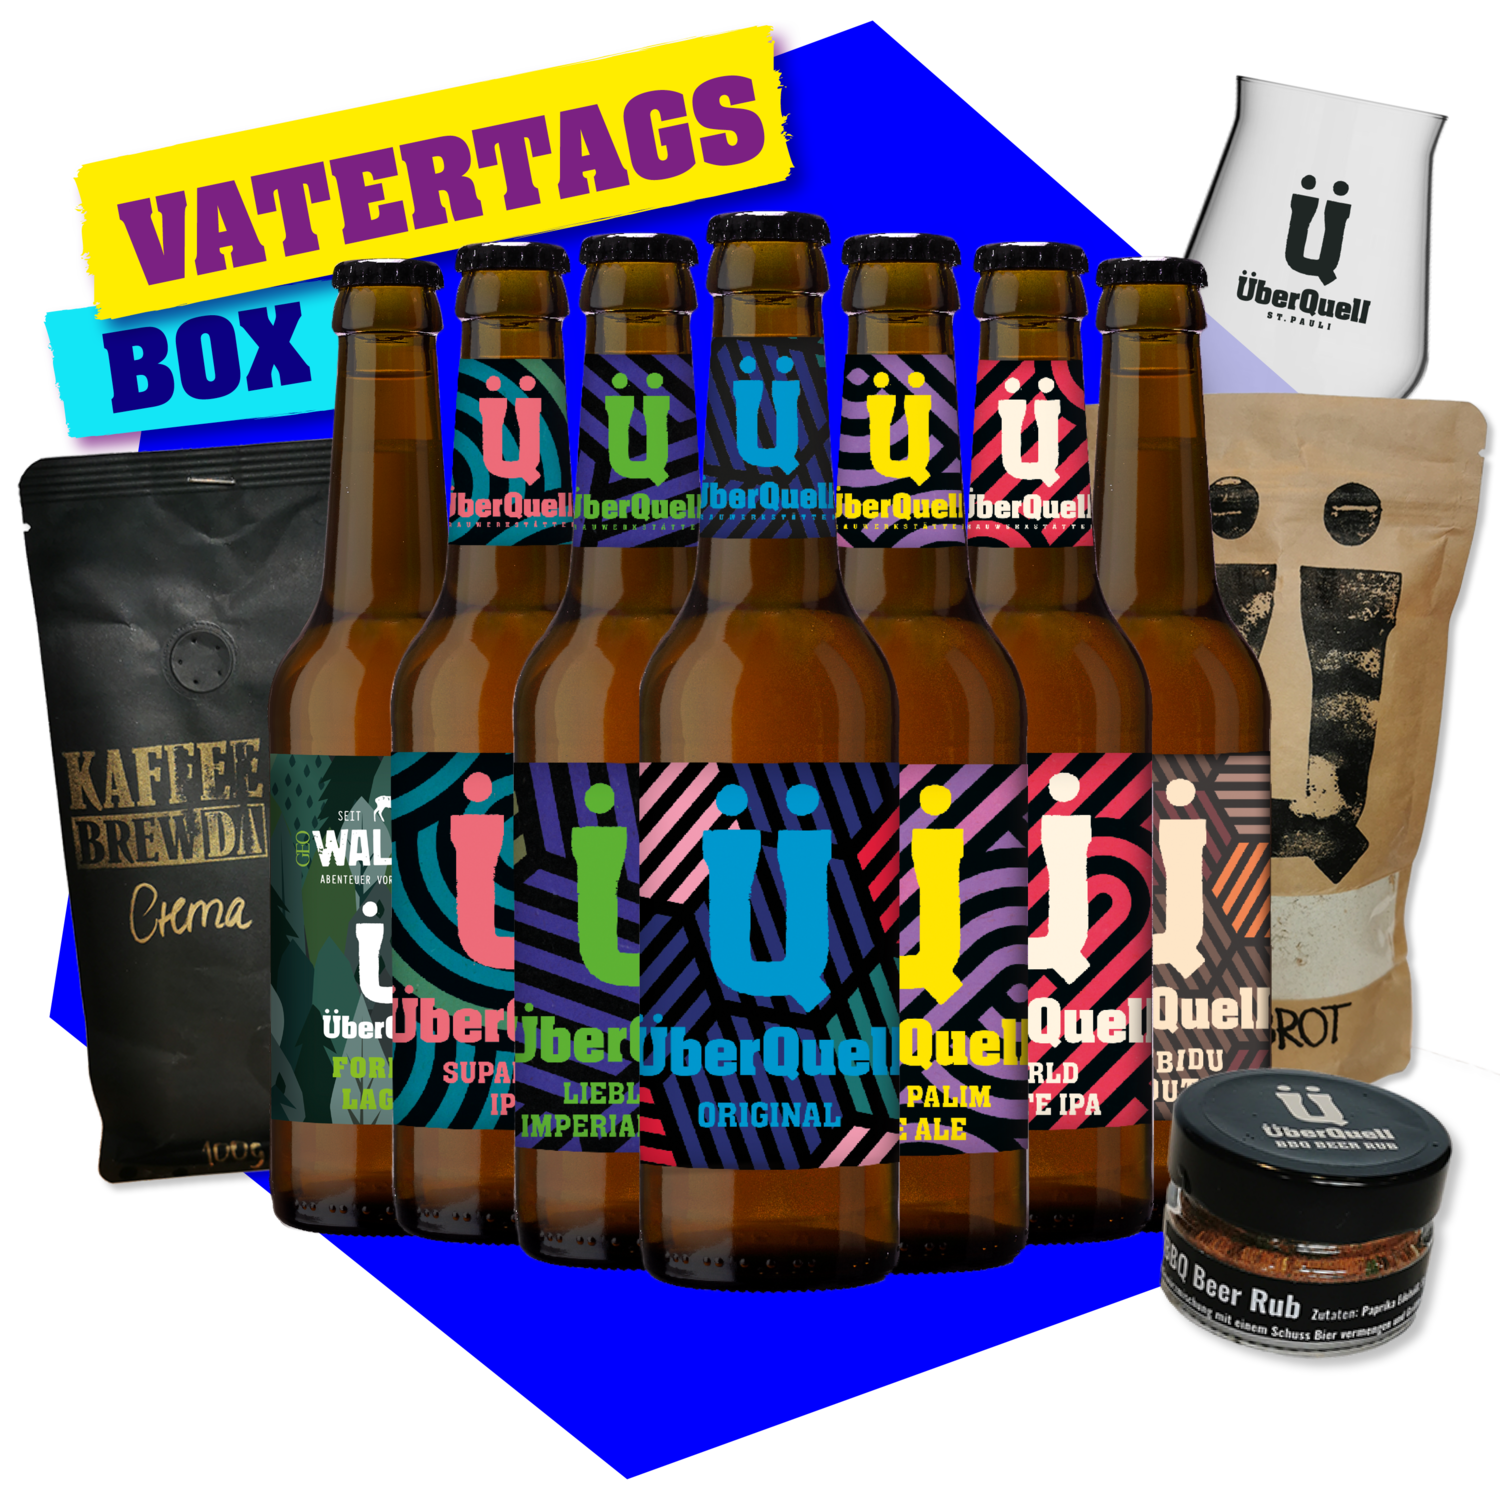 Vatertags-Box Deluxe